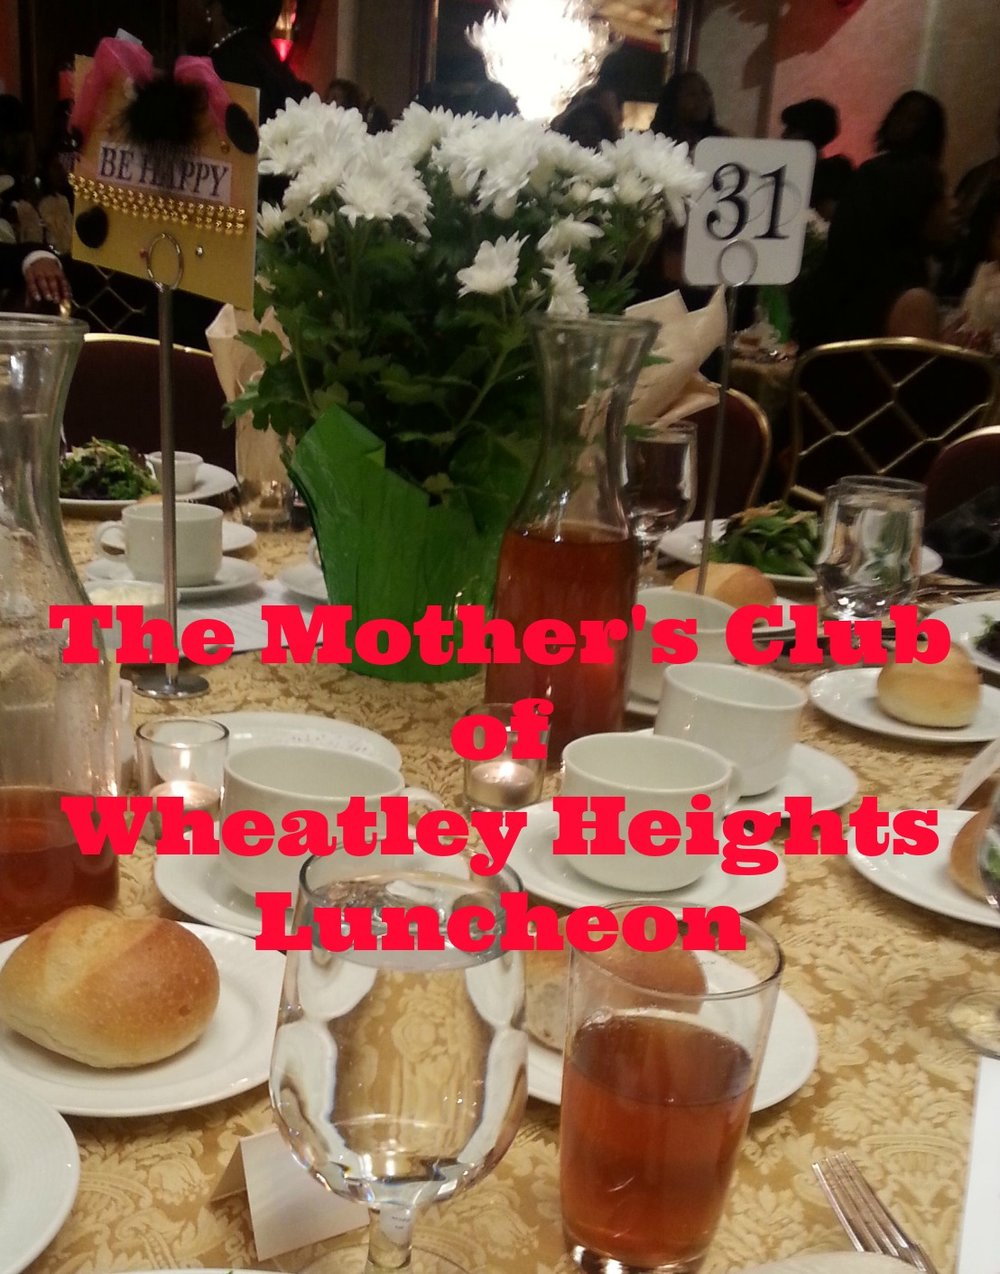 The_Mothers_Club_of_Wheatley_Heights_Luncheon.jpg